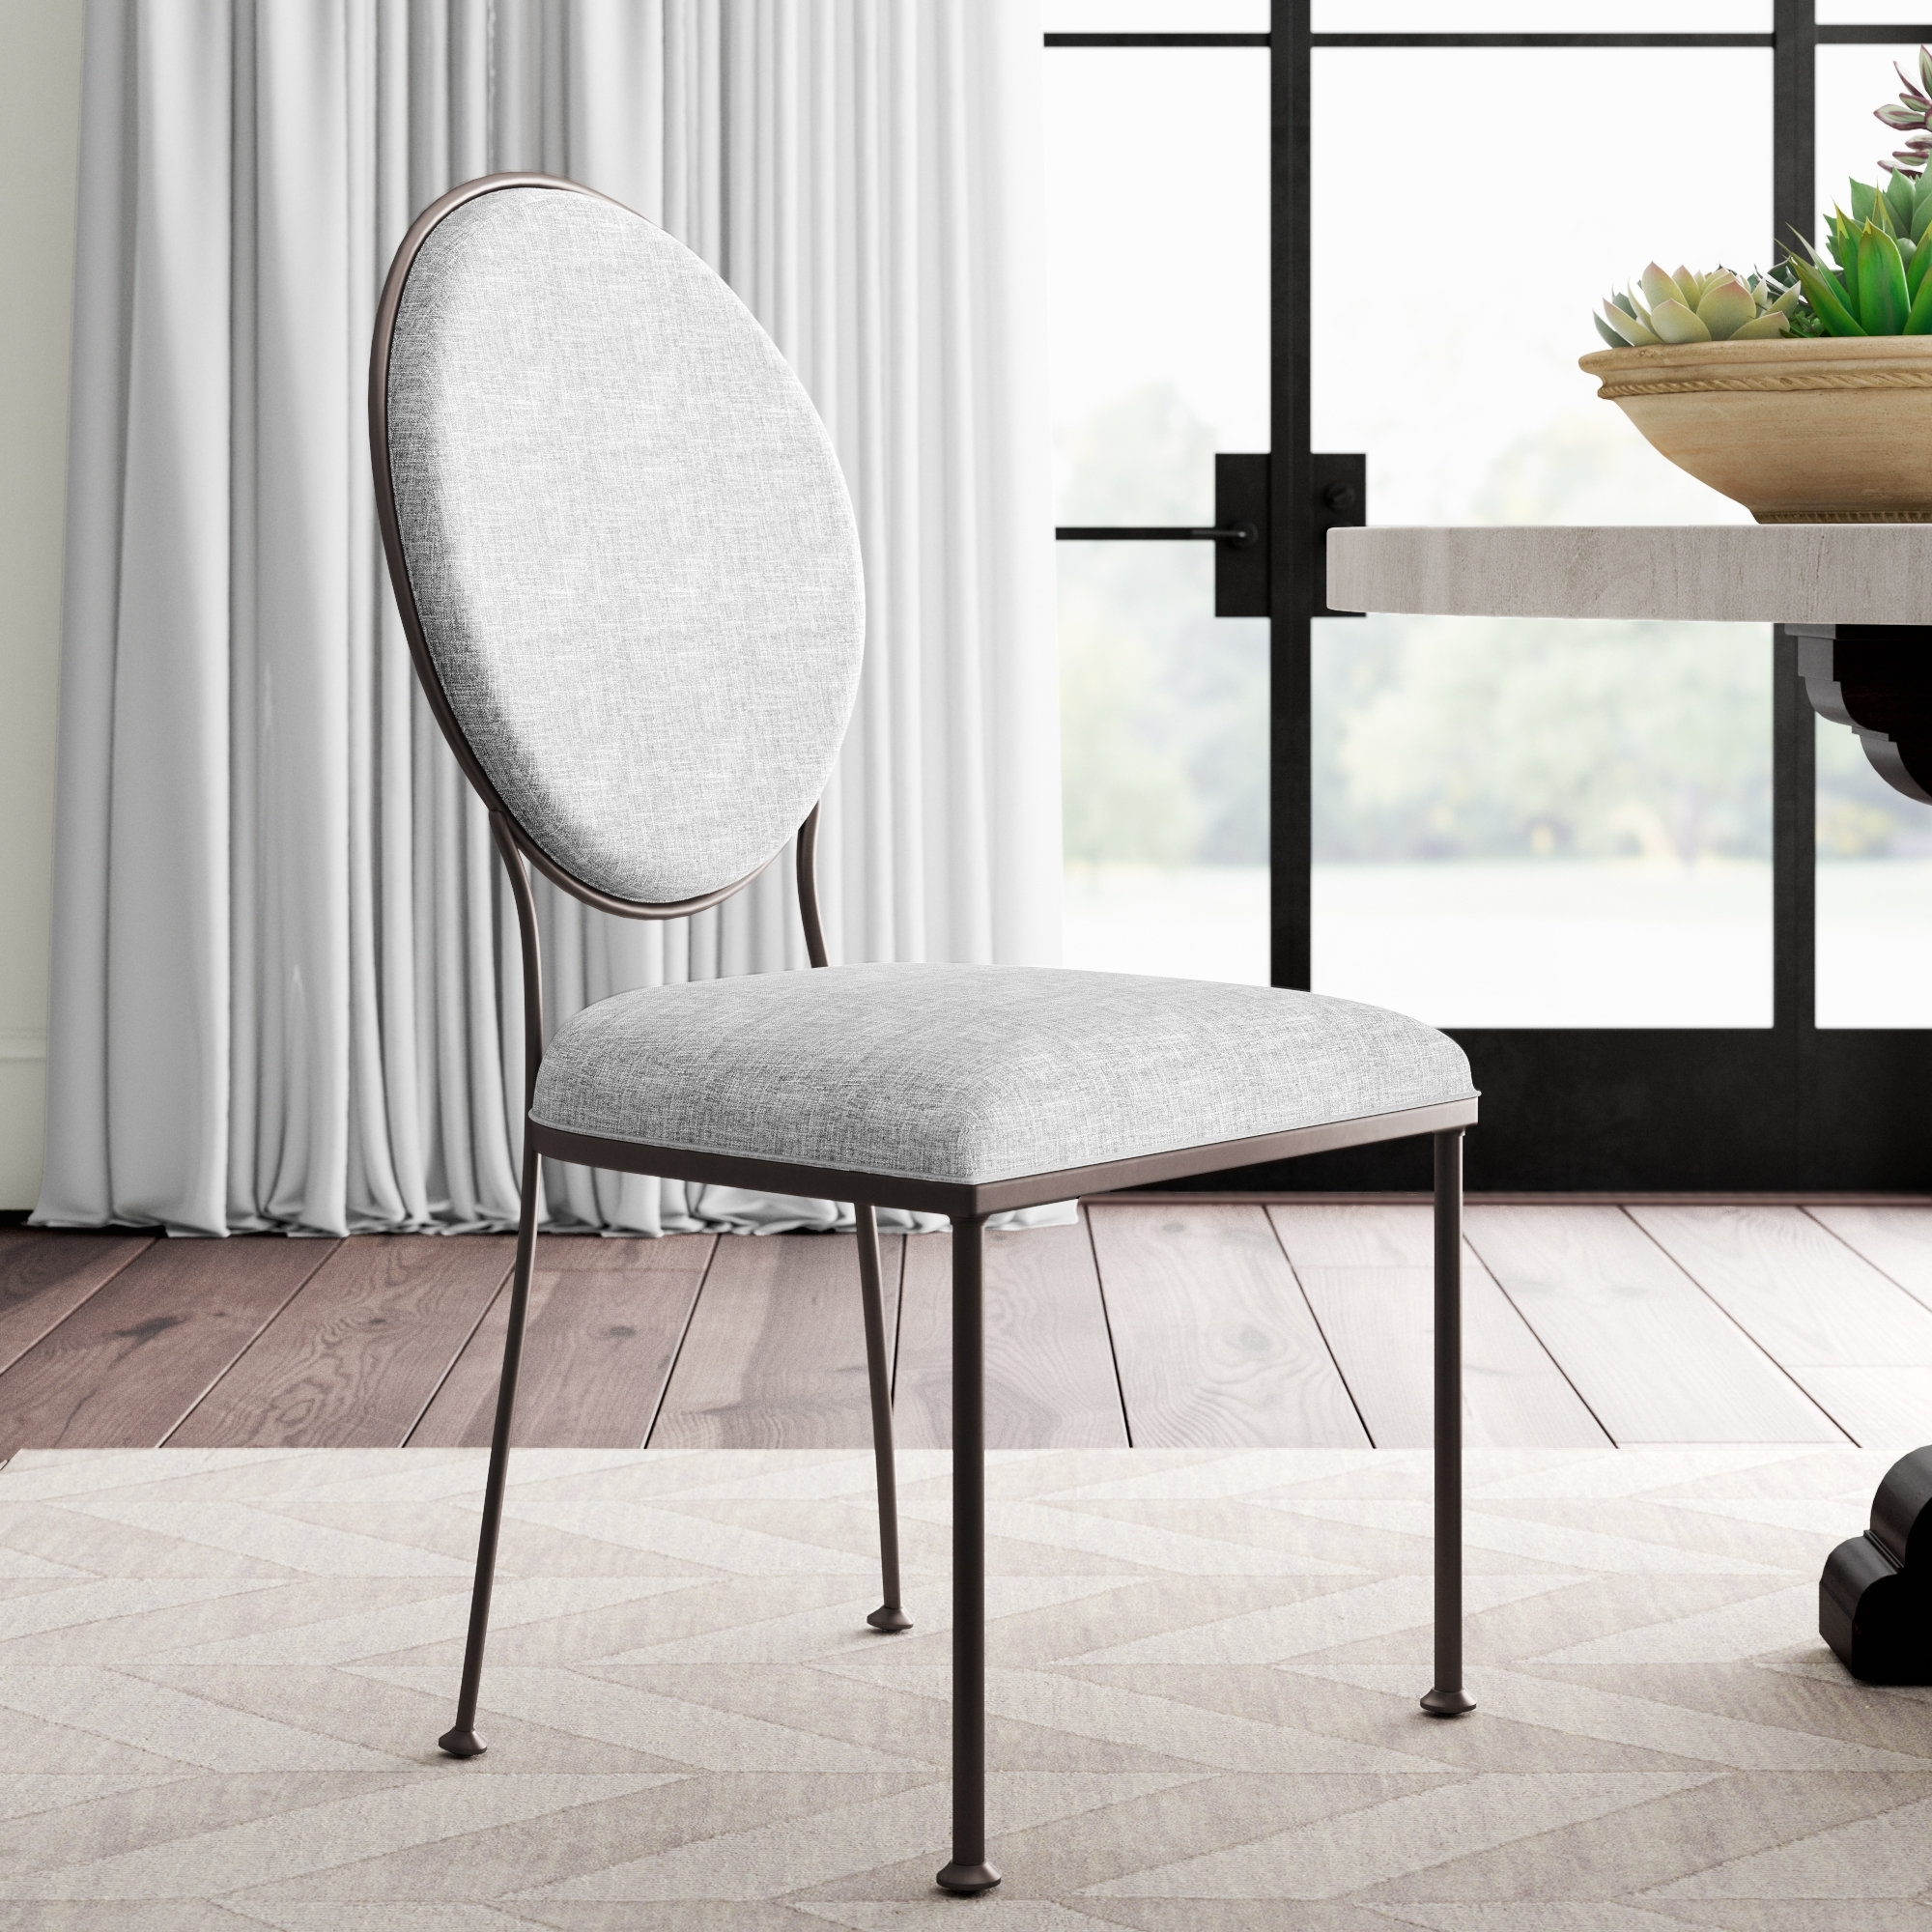 Wayfair Within 2017 Caira Black 5 Piece Round Dining Sets With Upholstered Side Chairs (View 17 of 25)